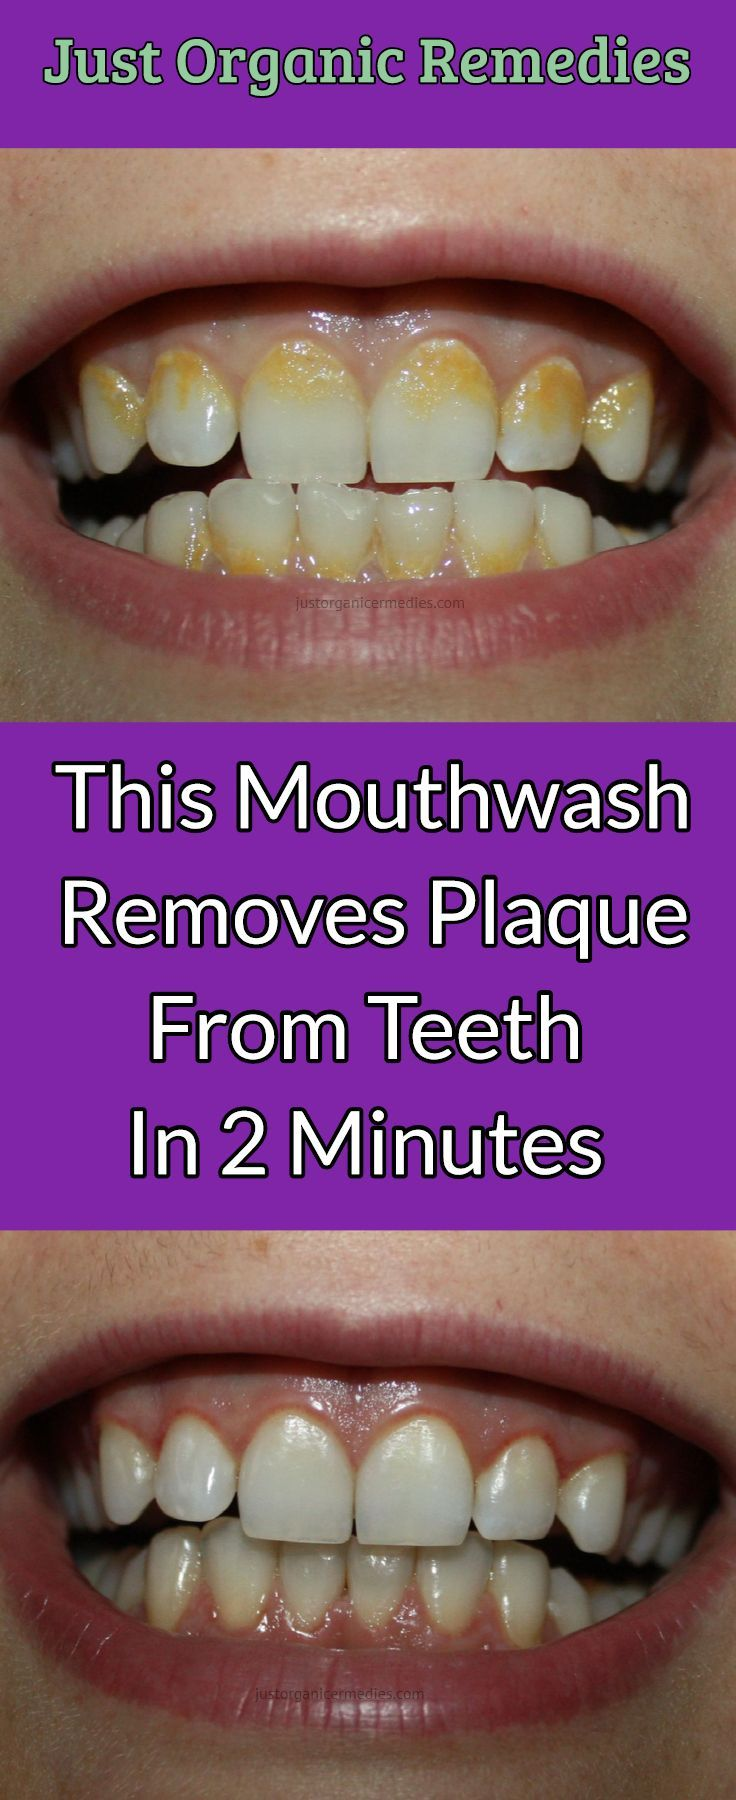 It reduces the presence of plaque, while reaching and fighting bacteria that escaped dental cleaning at the same time. It is actually the final step in the removal of bacteria and germs. Moreover, it leaves the mouth clean and the breath fresh.  #mouthwash #BakingSoda #Salt #HydrogenPeroxide